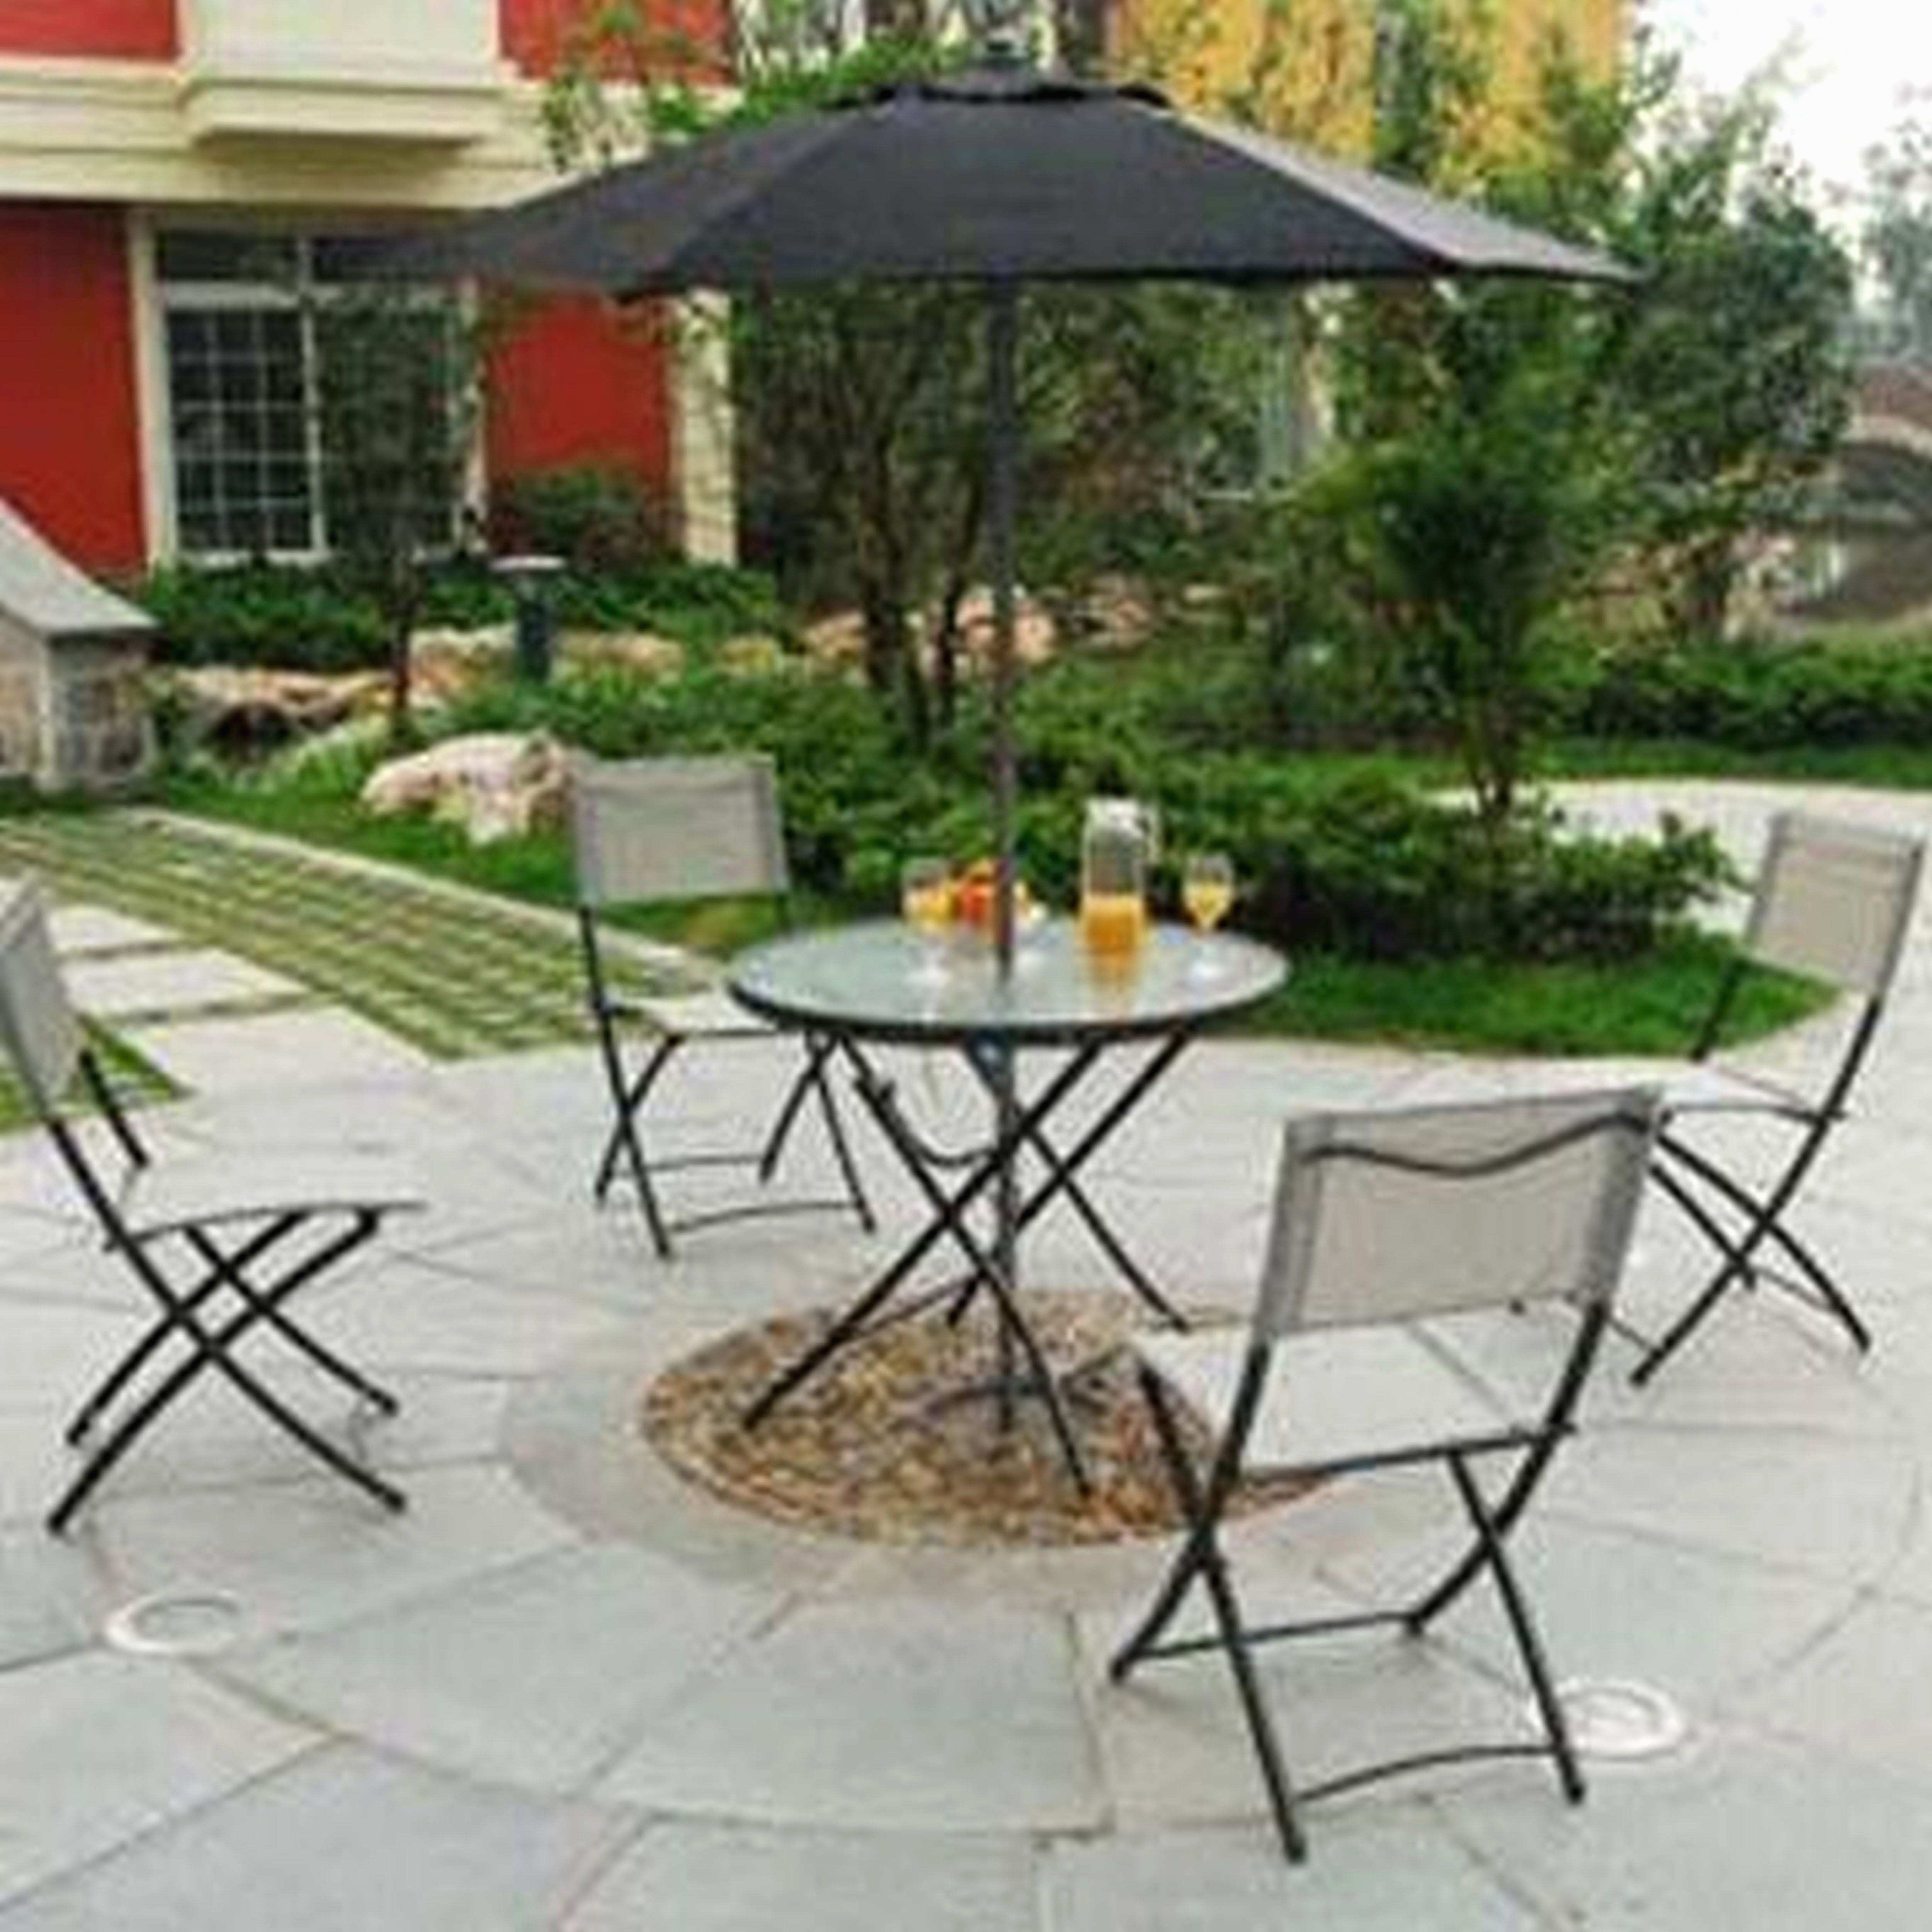 Paynesvillecity With Regard To Patio Umbrellas For Small Spaces (View 17 of 20)